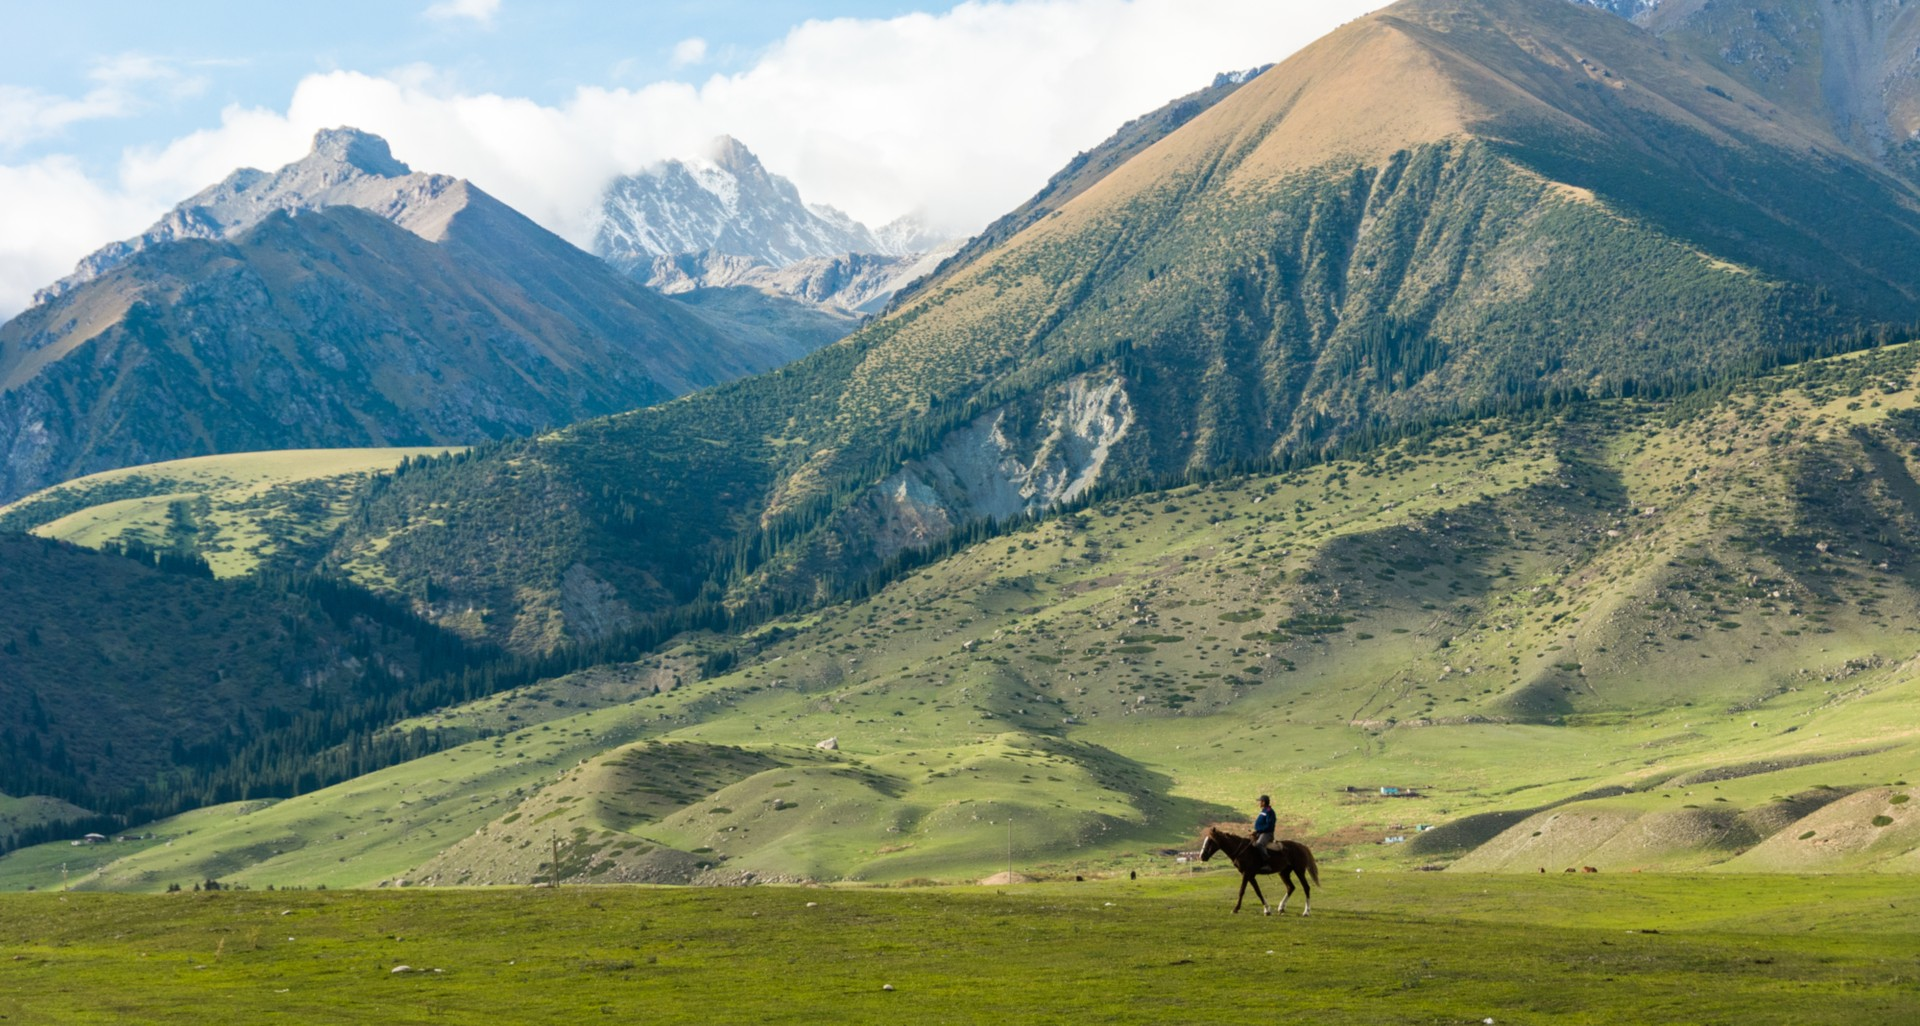 A lone horserider among the Tien Shan mountain range in Kyrgyzstan